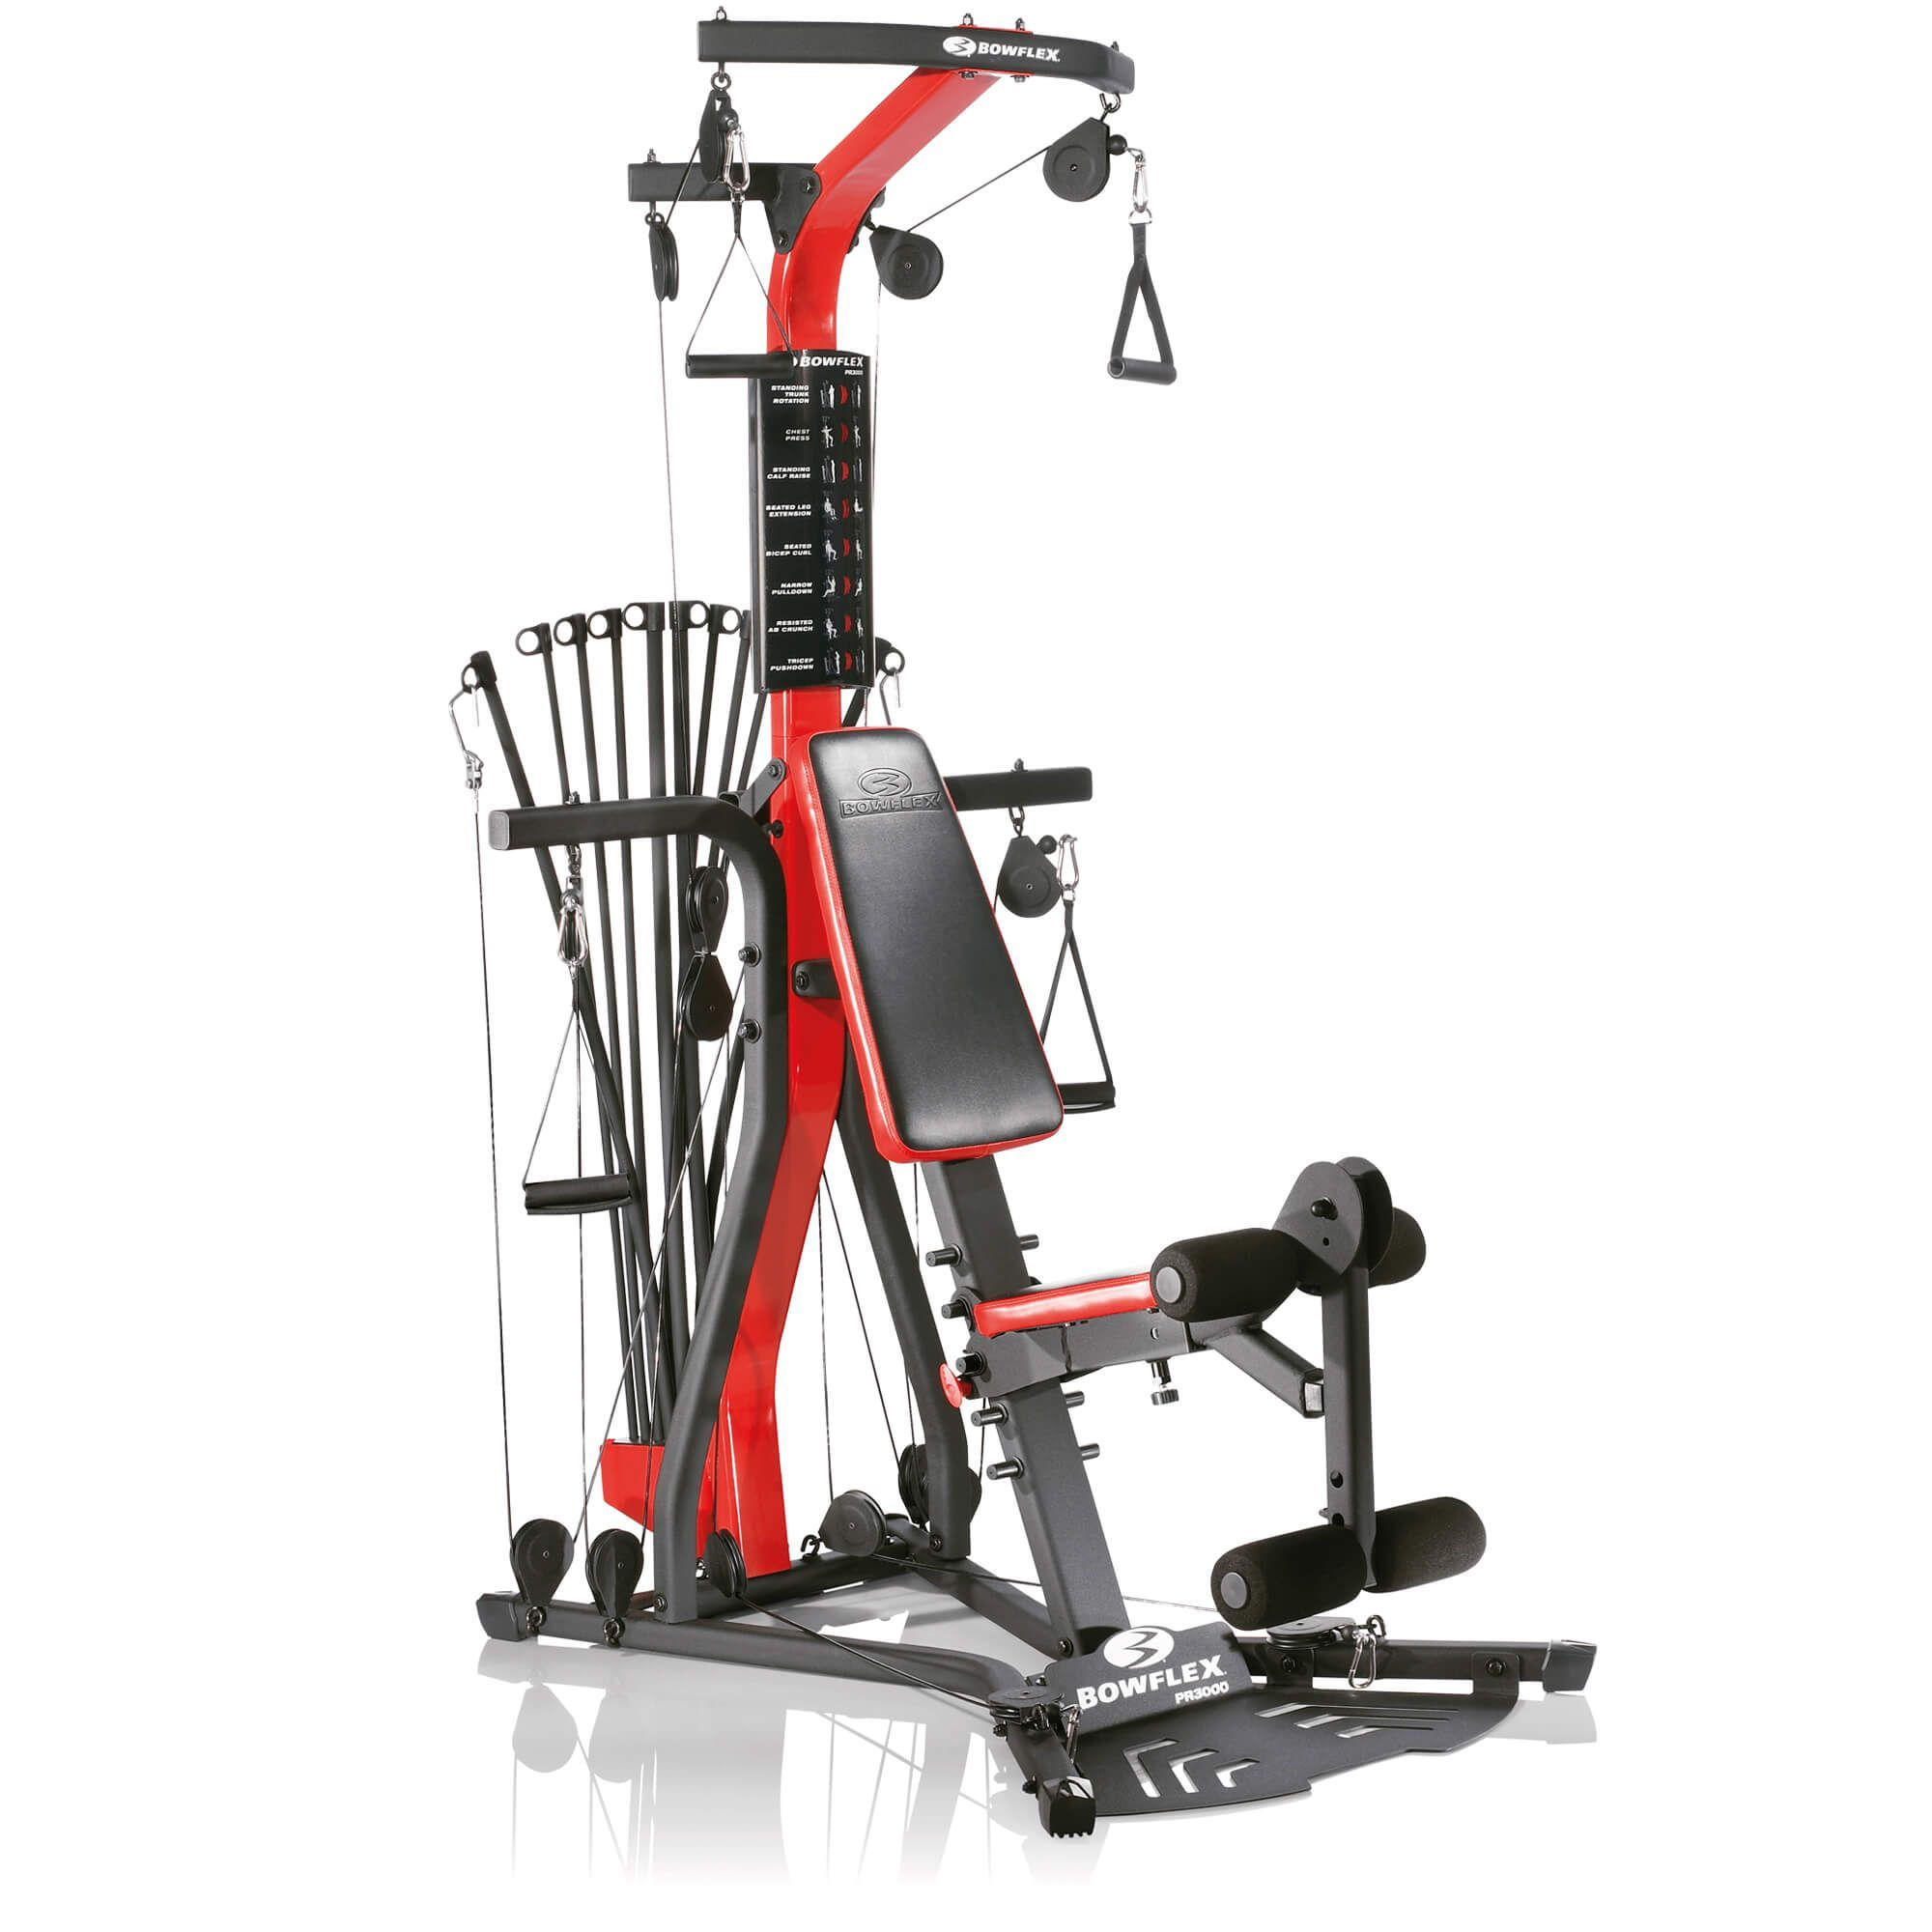 edfa3b34d19 Best Top Ten Home Gym For All Time Within Your Budget